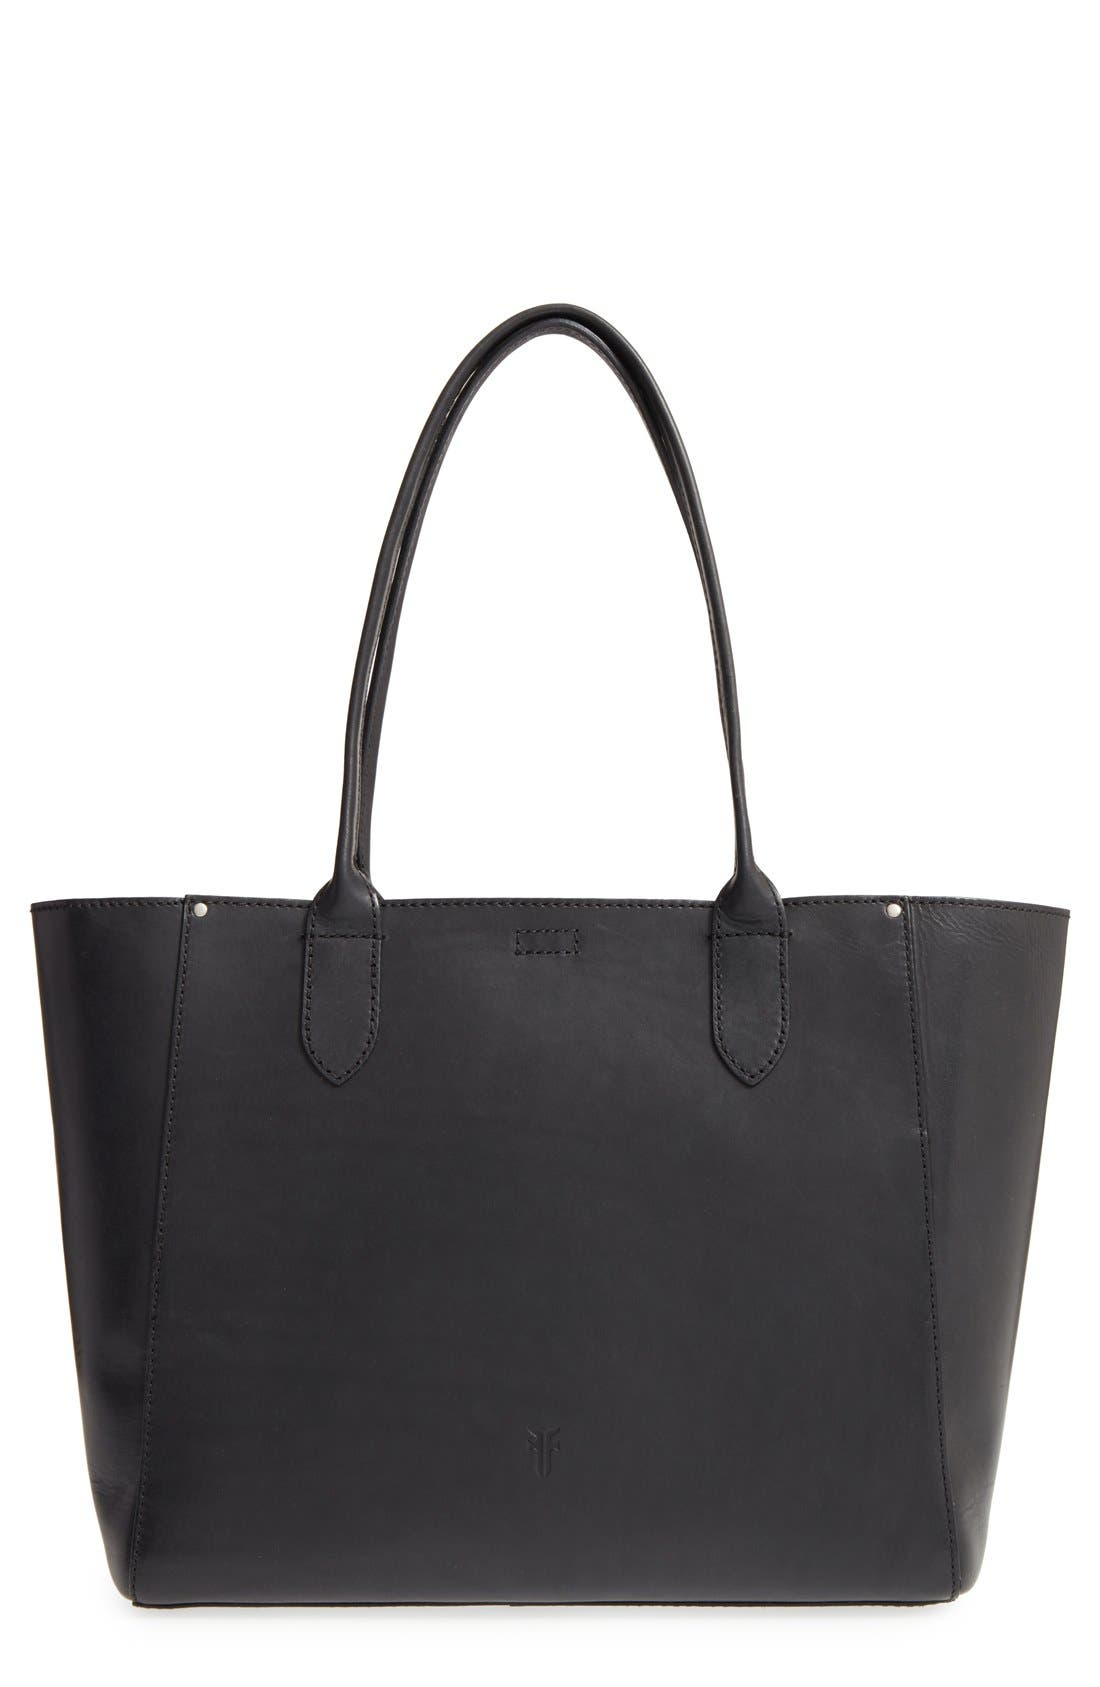 FRYE,                             'Casey' Leather Tote,                             Main thumbnail 1, color,                             001